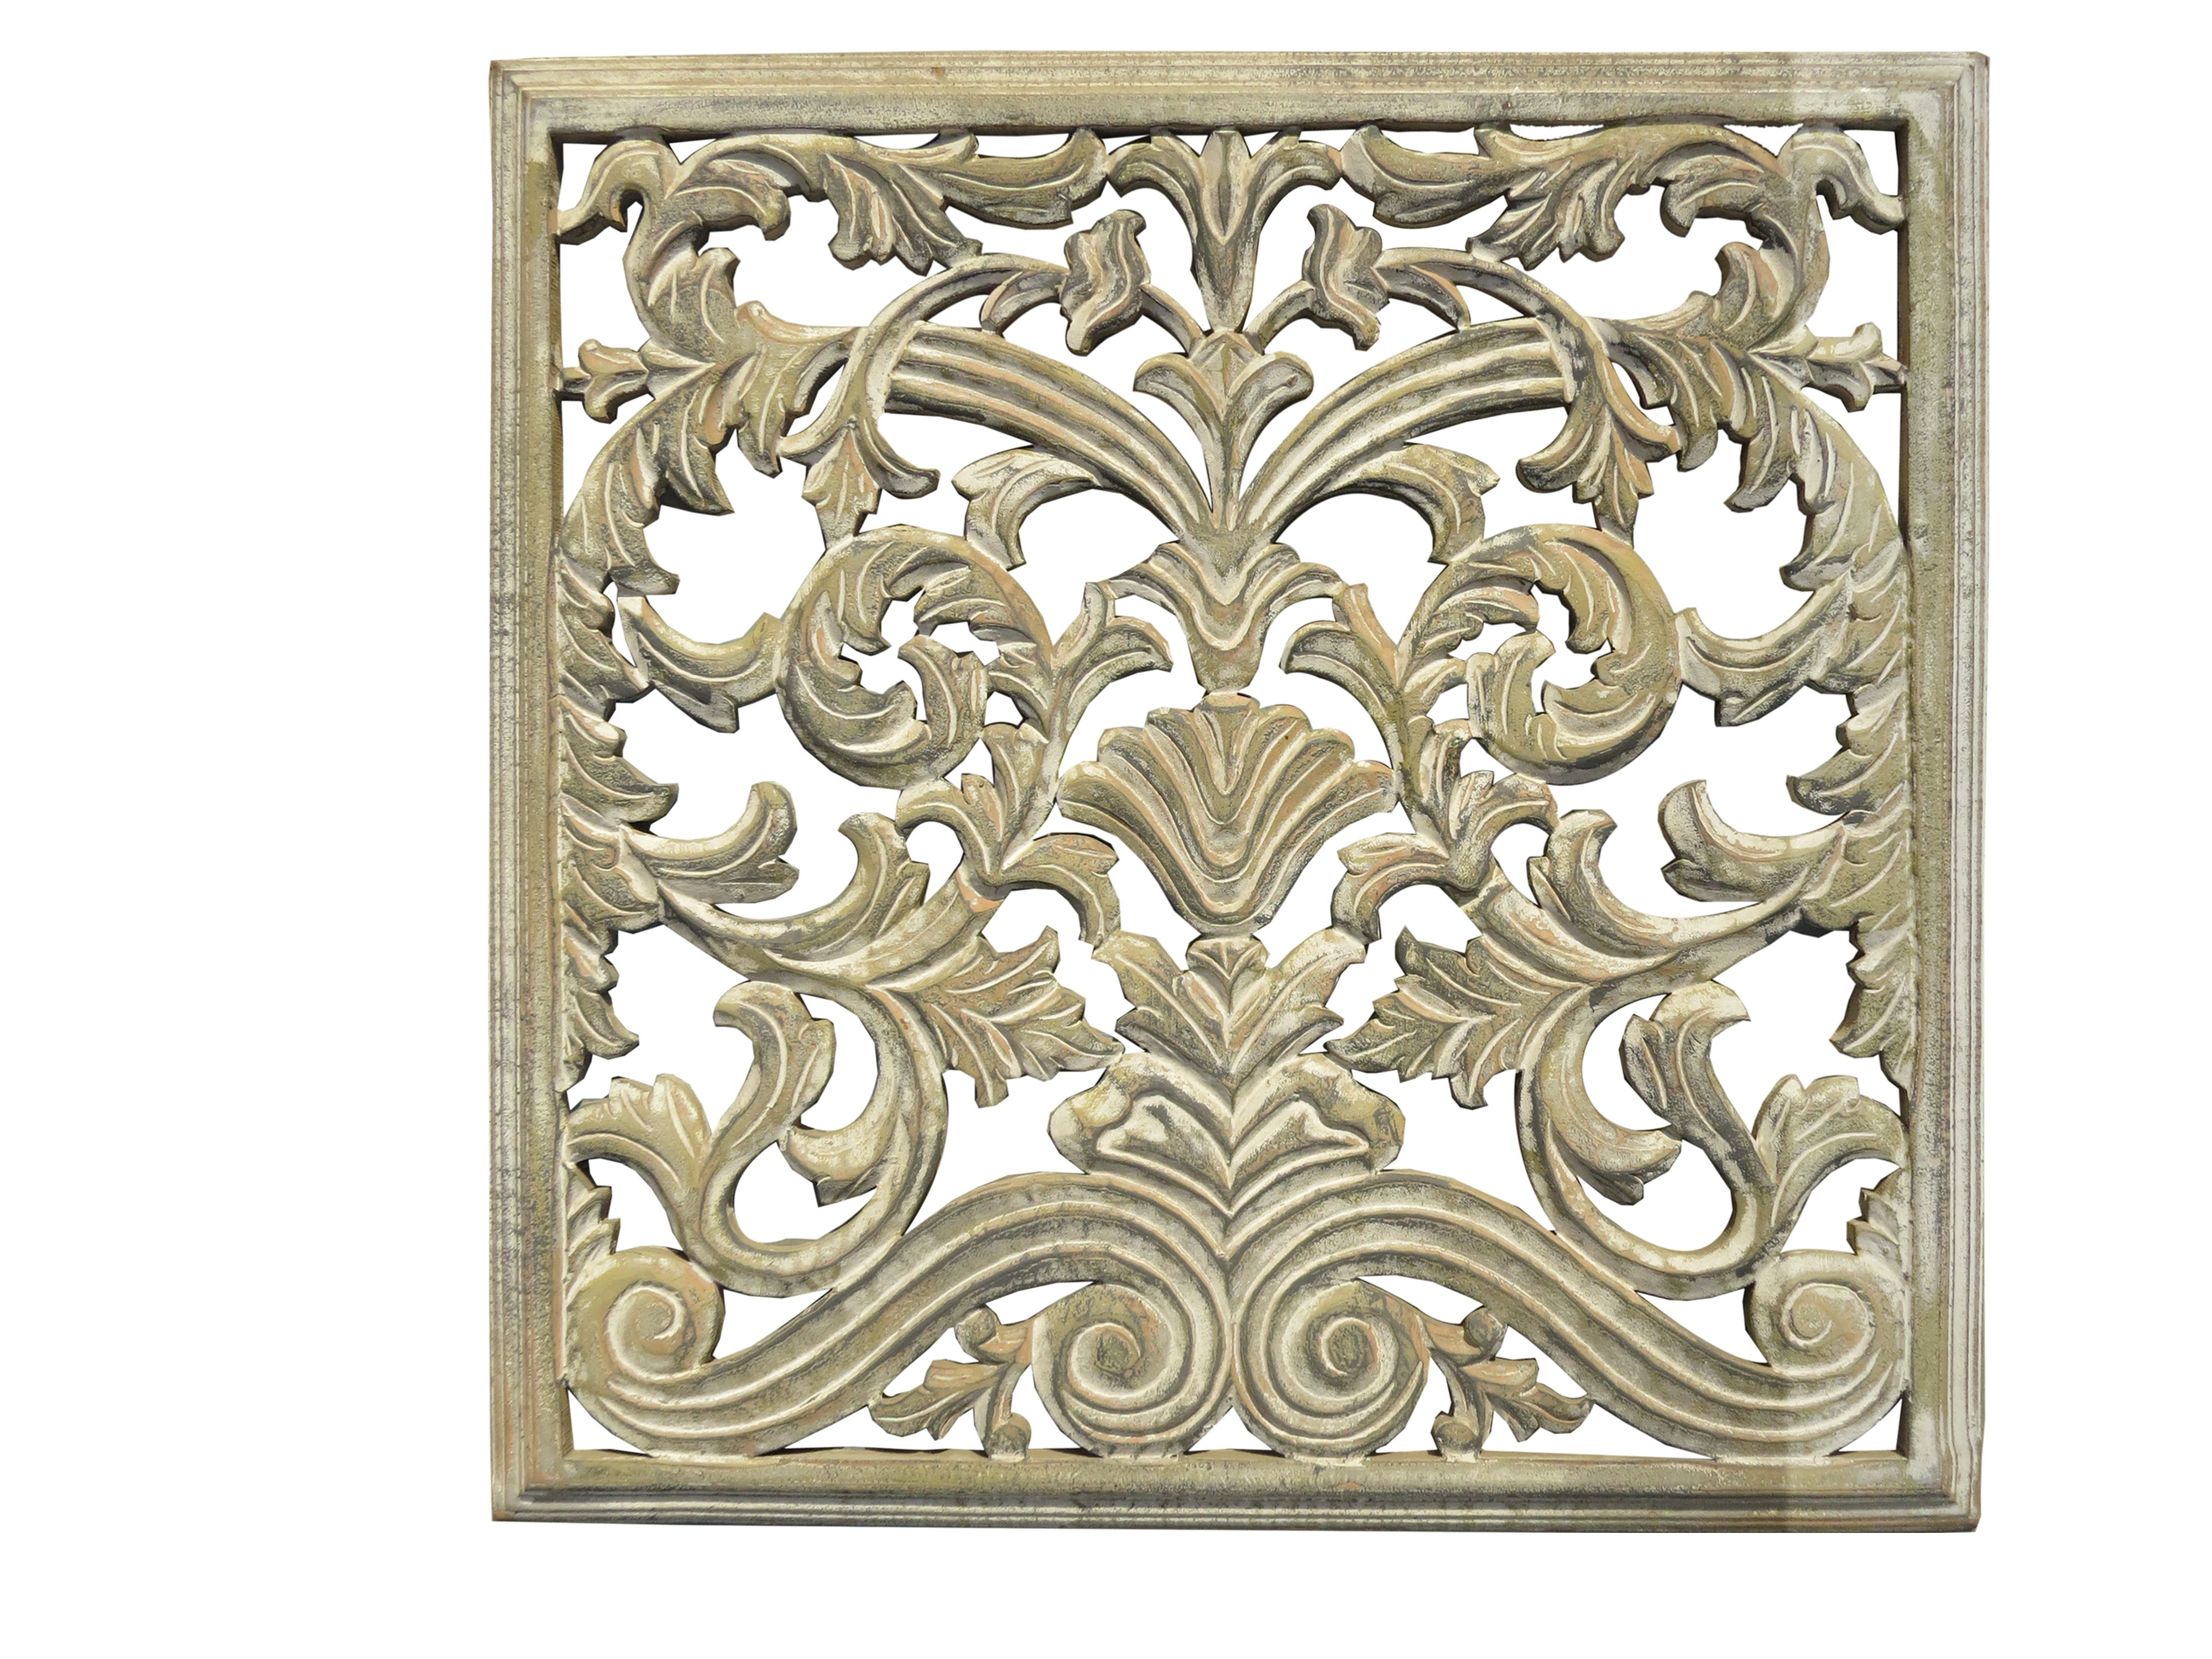 Mdf Carved Panel Design In Light Brown Antique Finish Hand Carved Wood Panels In Intricate And Elaborate Patte Hand Carved Wood Class Decoration Wood Paneling